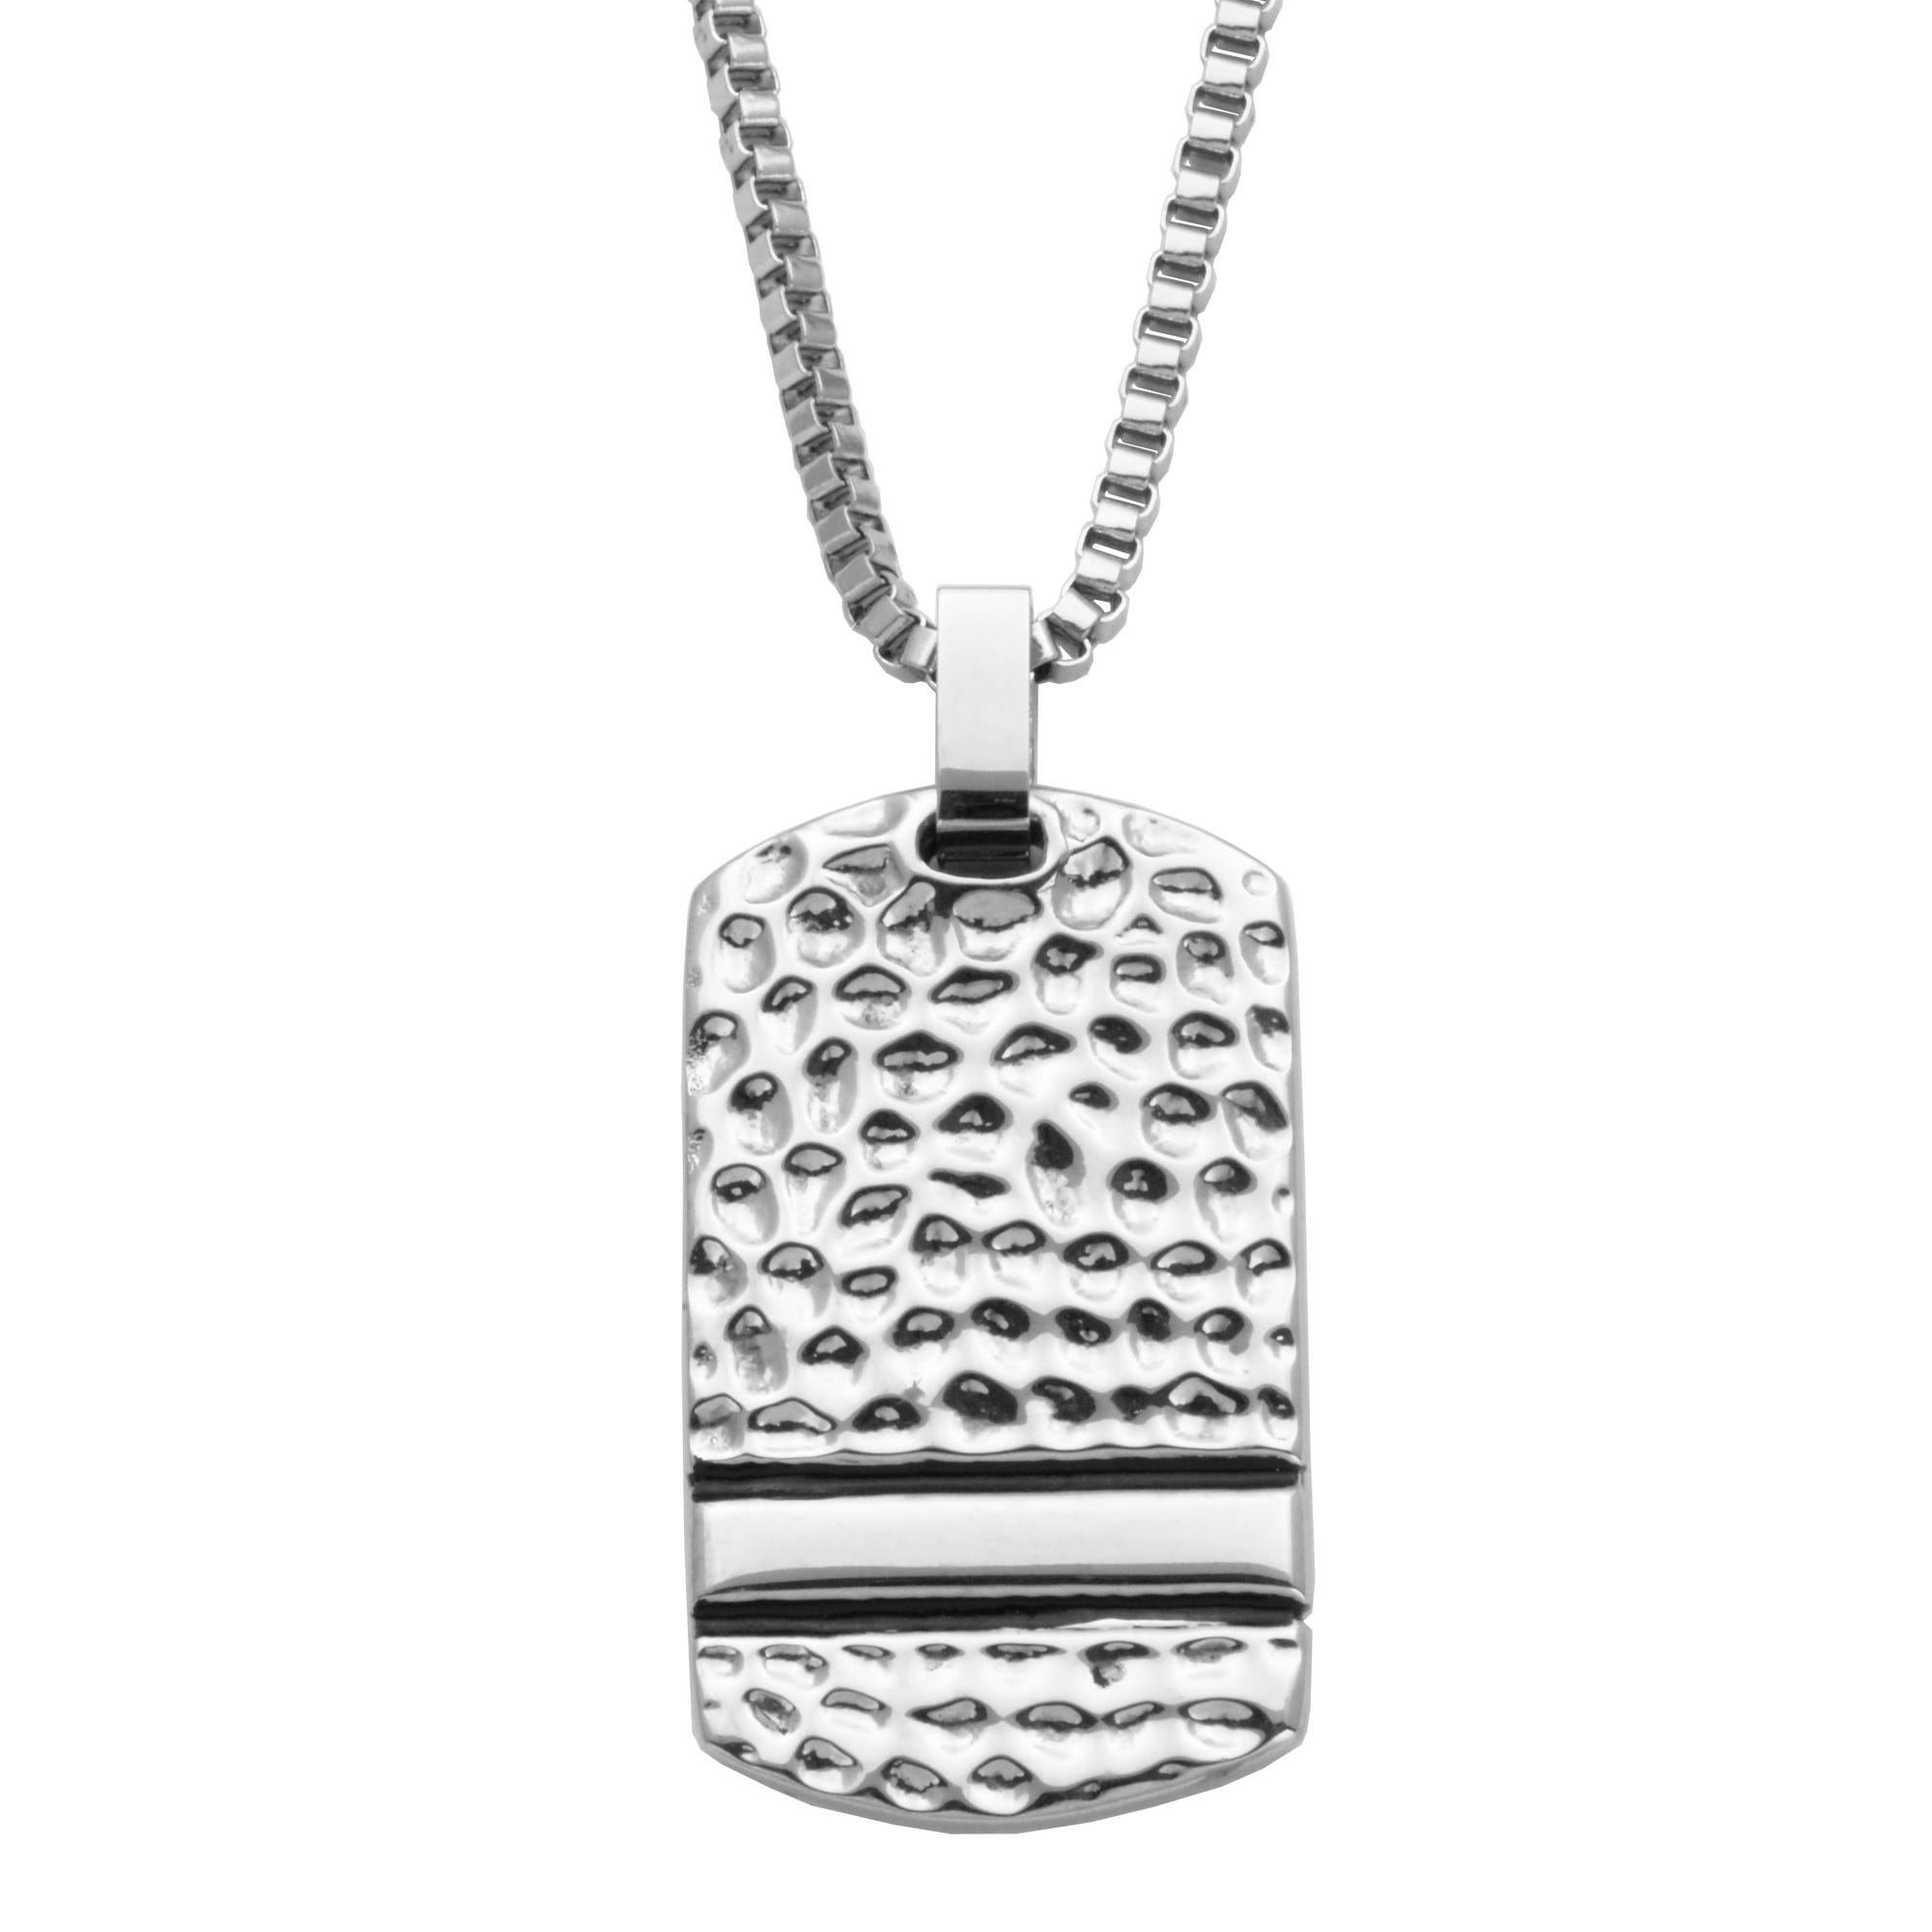 Hammered Look Stainless Steel Dog Tag Fashion Necklace